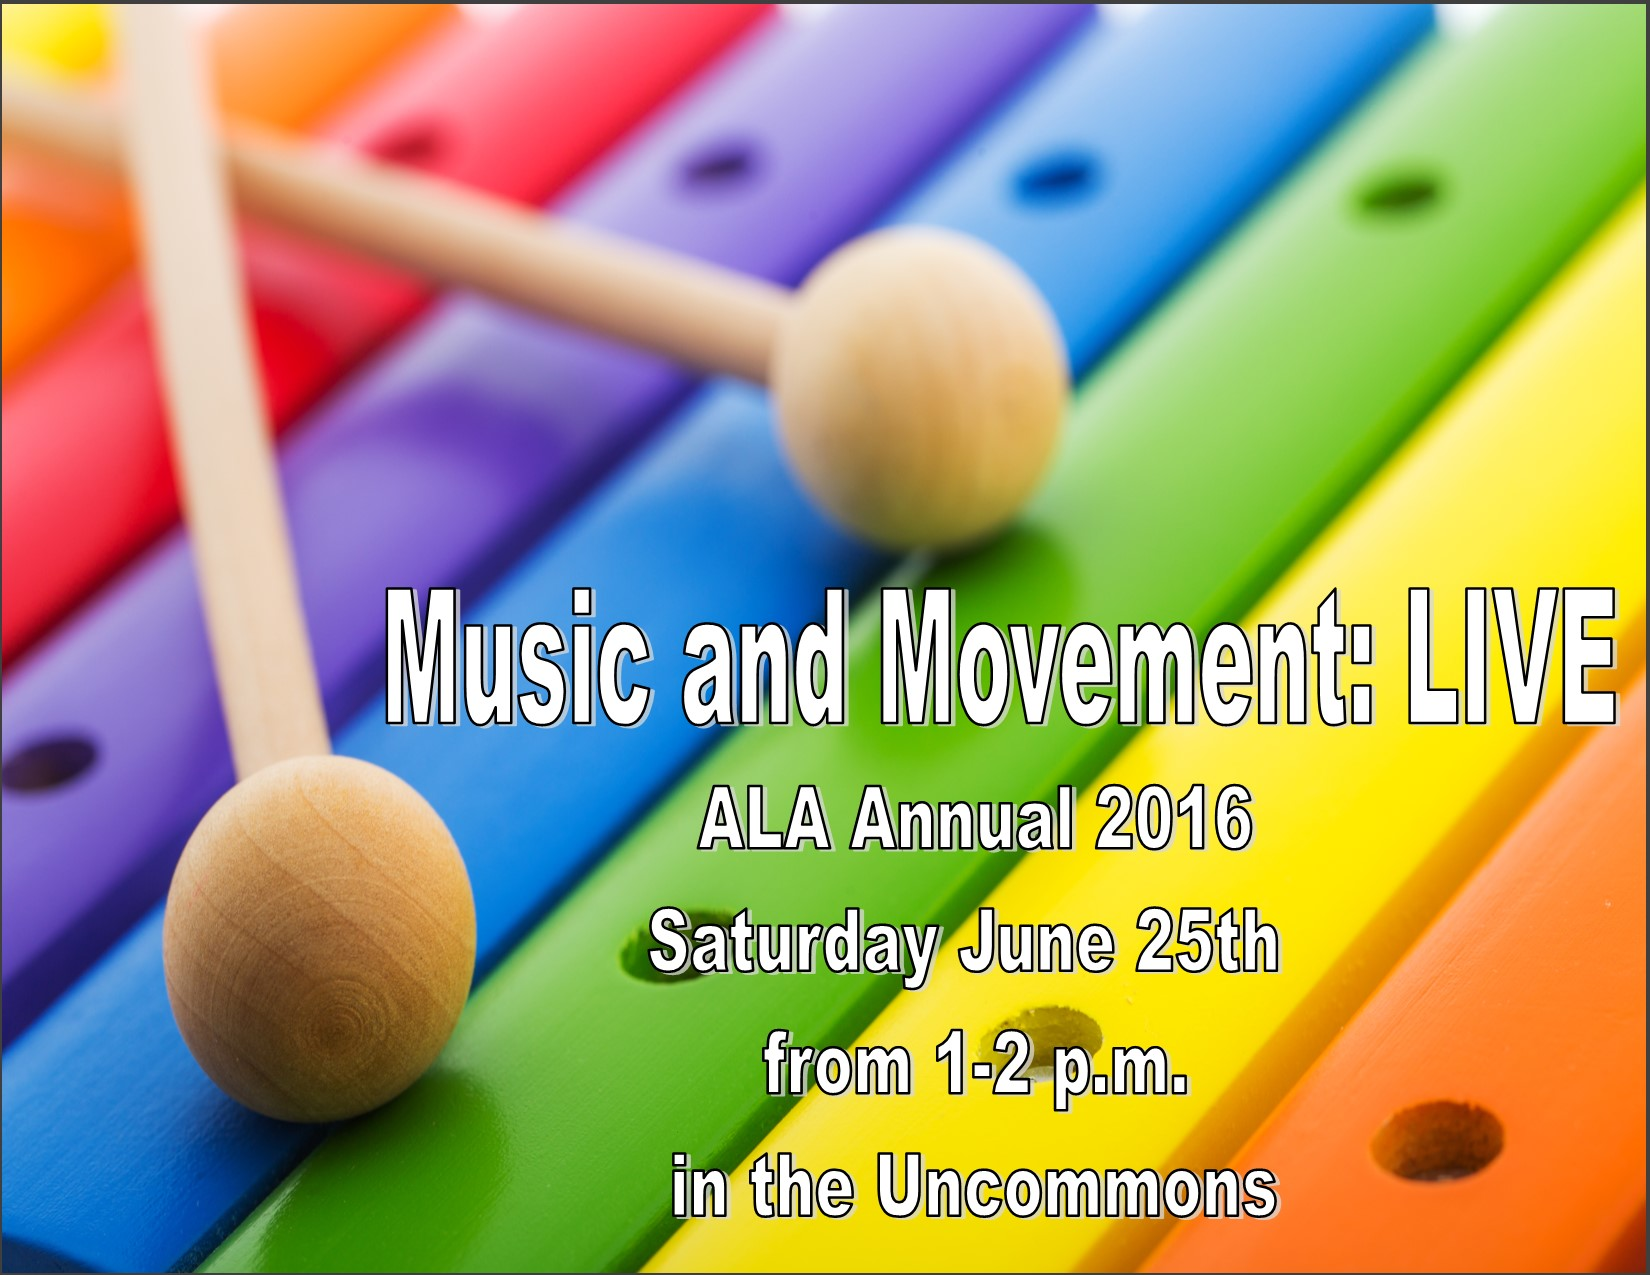 Music & Movement: LIVE at ALA Annual 2016 [Picture courtesy of the author.]